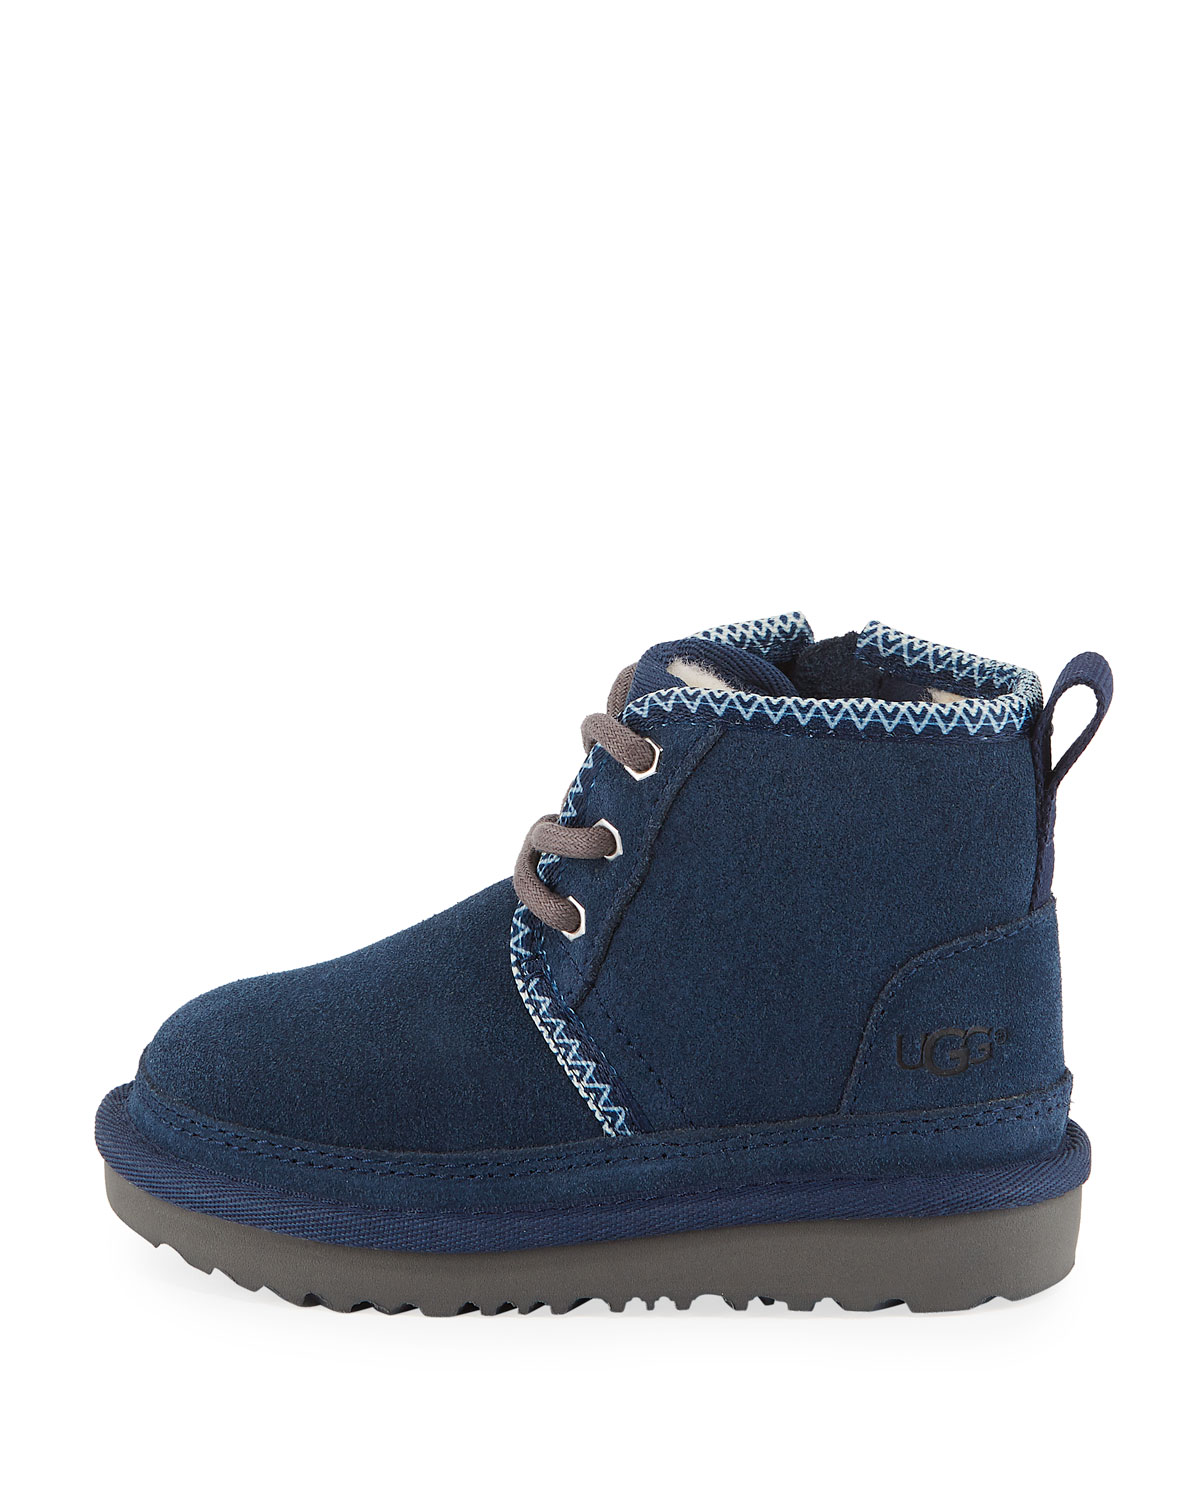 d9e34429461 Neumel II Suede Lace-Up Boots, Toddler